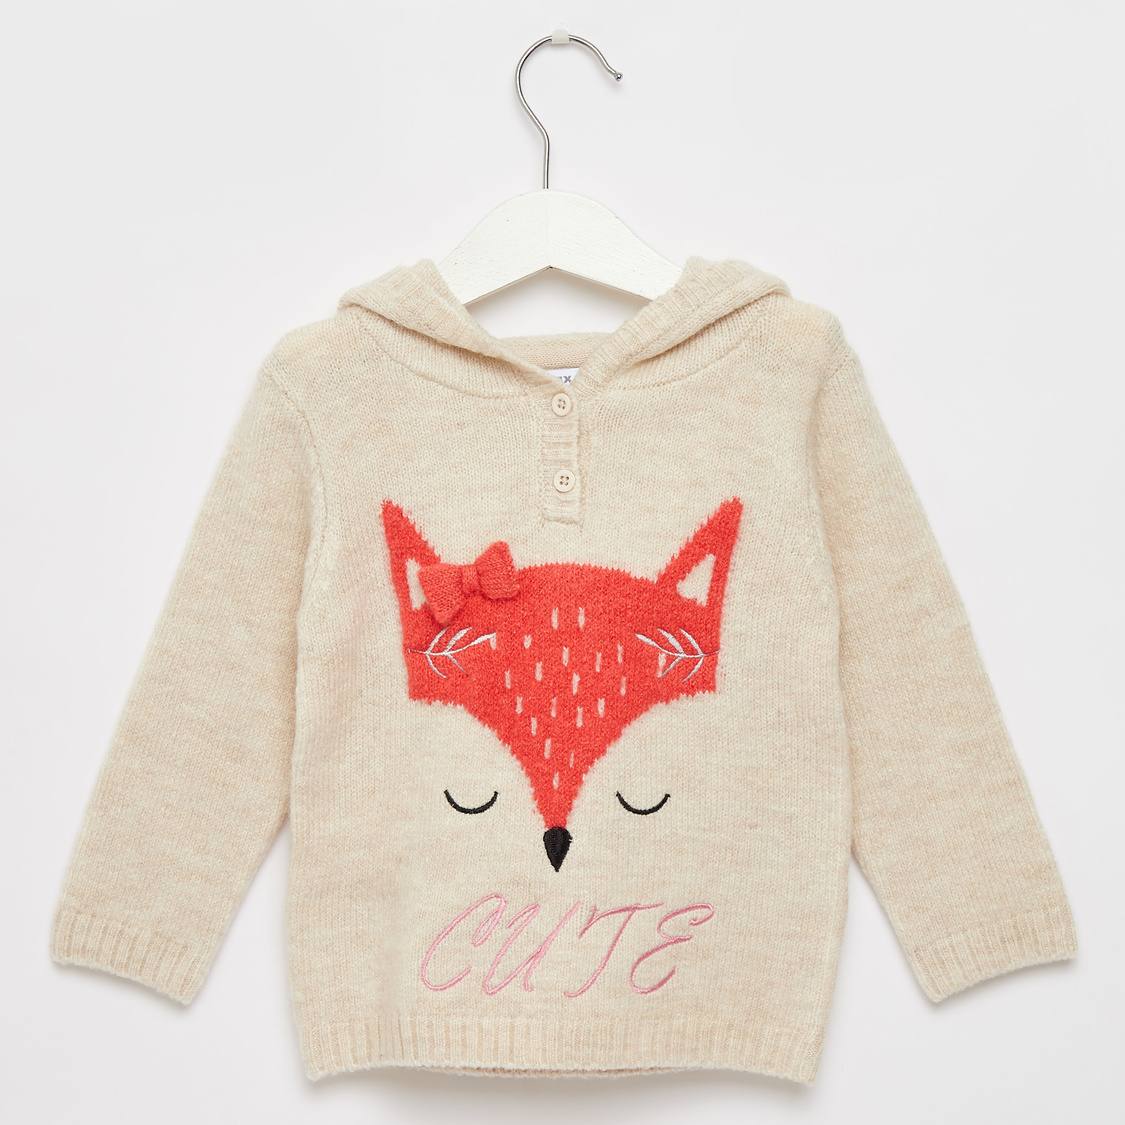 Textured Sweater with Hood and Bow Applique Detail